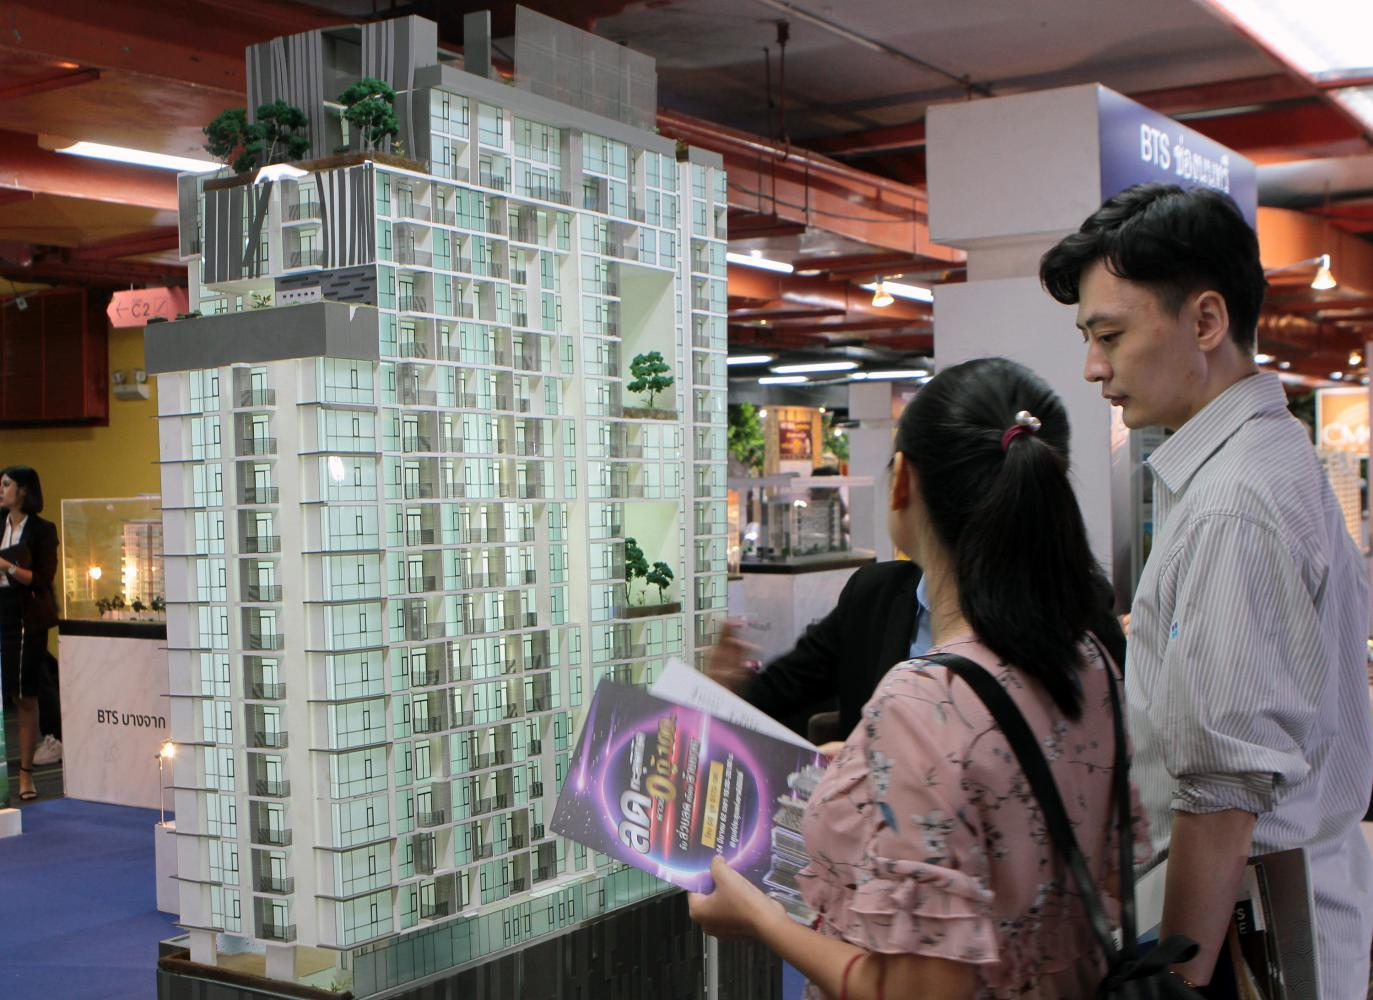 Visitors check out a housing fair. Juwai says a residency golden visa scheme can help boost property sales among Chinese. (Photo by Tawatchai Kemgumnerd)